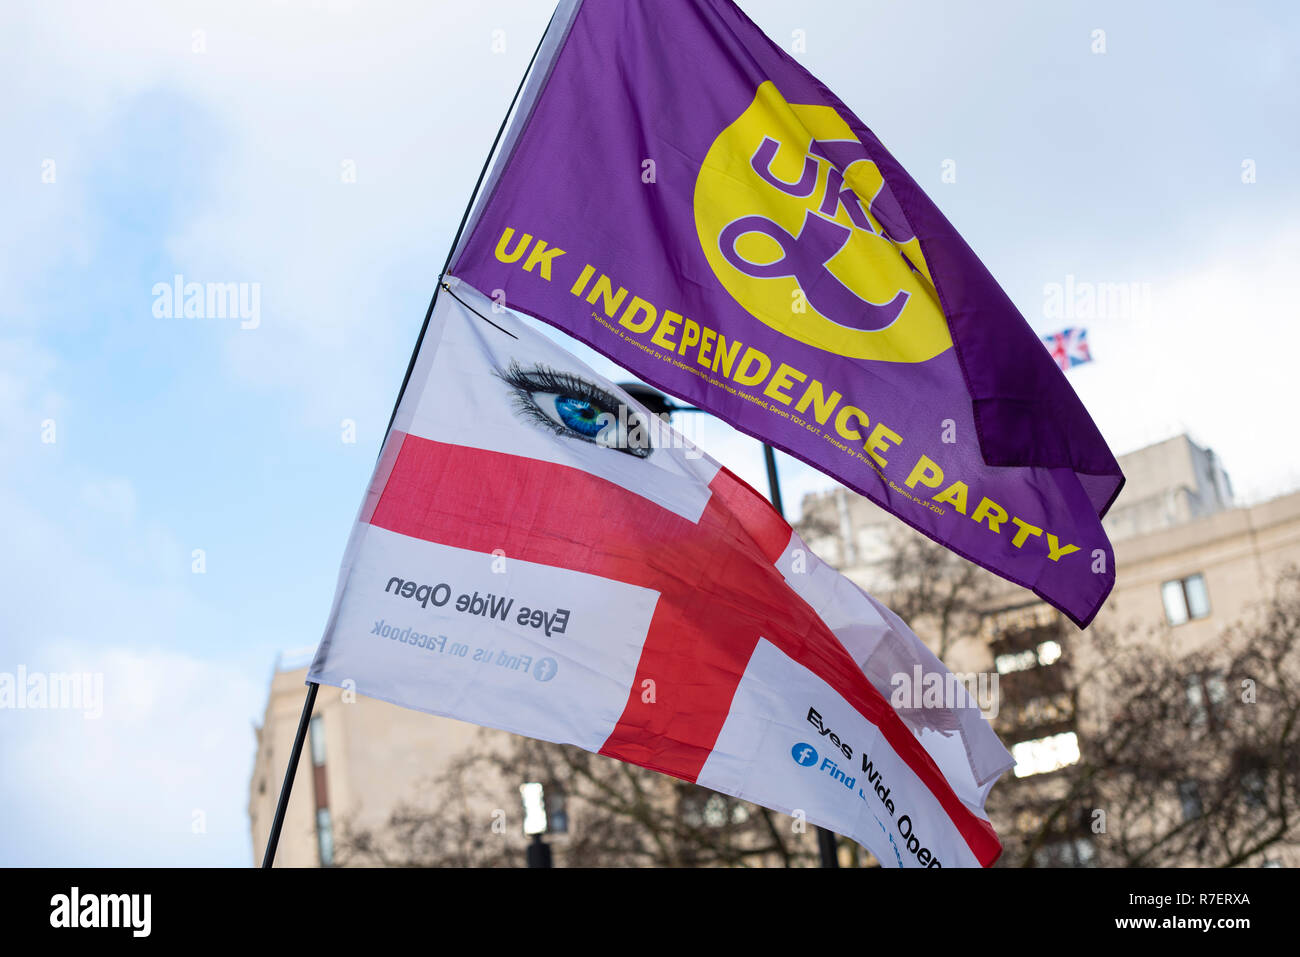 Brexit Betrayal march. Protesters are demonstrating at what they see as a betrayal by the UK government in not following through with leaving the EU in its entirety after the referendum. UKIP flag and Eyes wide open flag - Stock Image